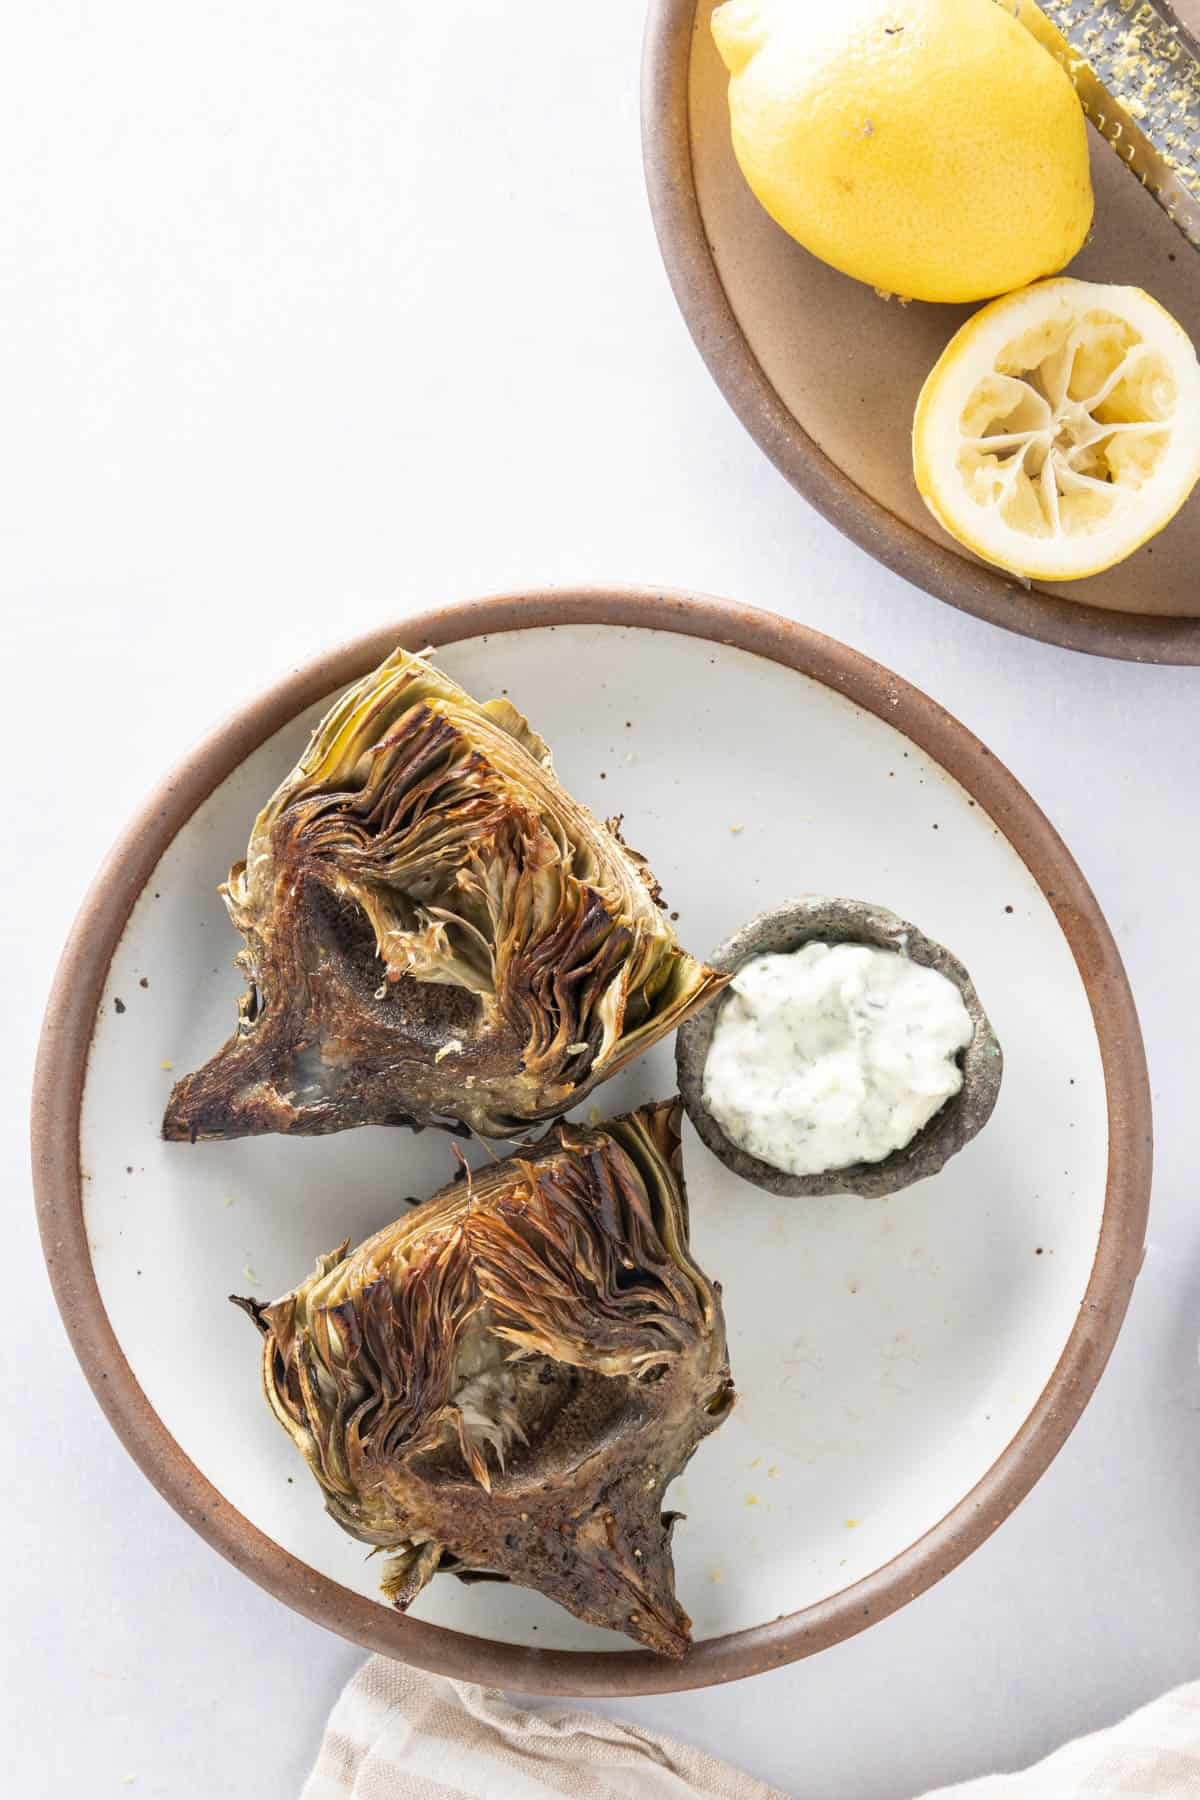 Plate of air fryer artichokes with basil aioli